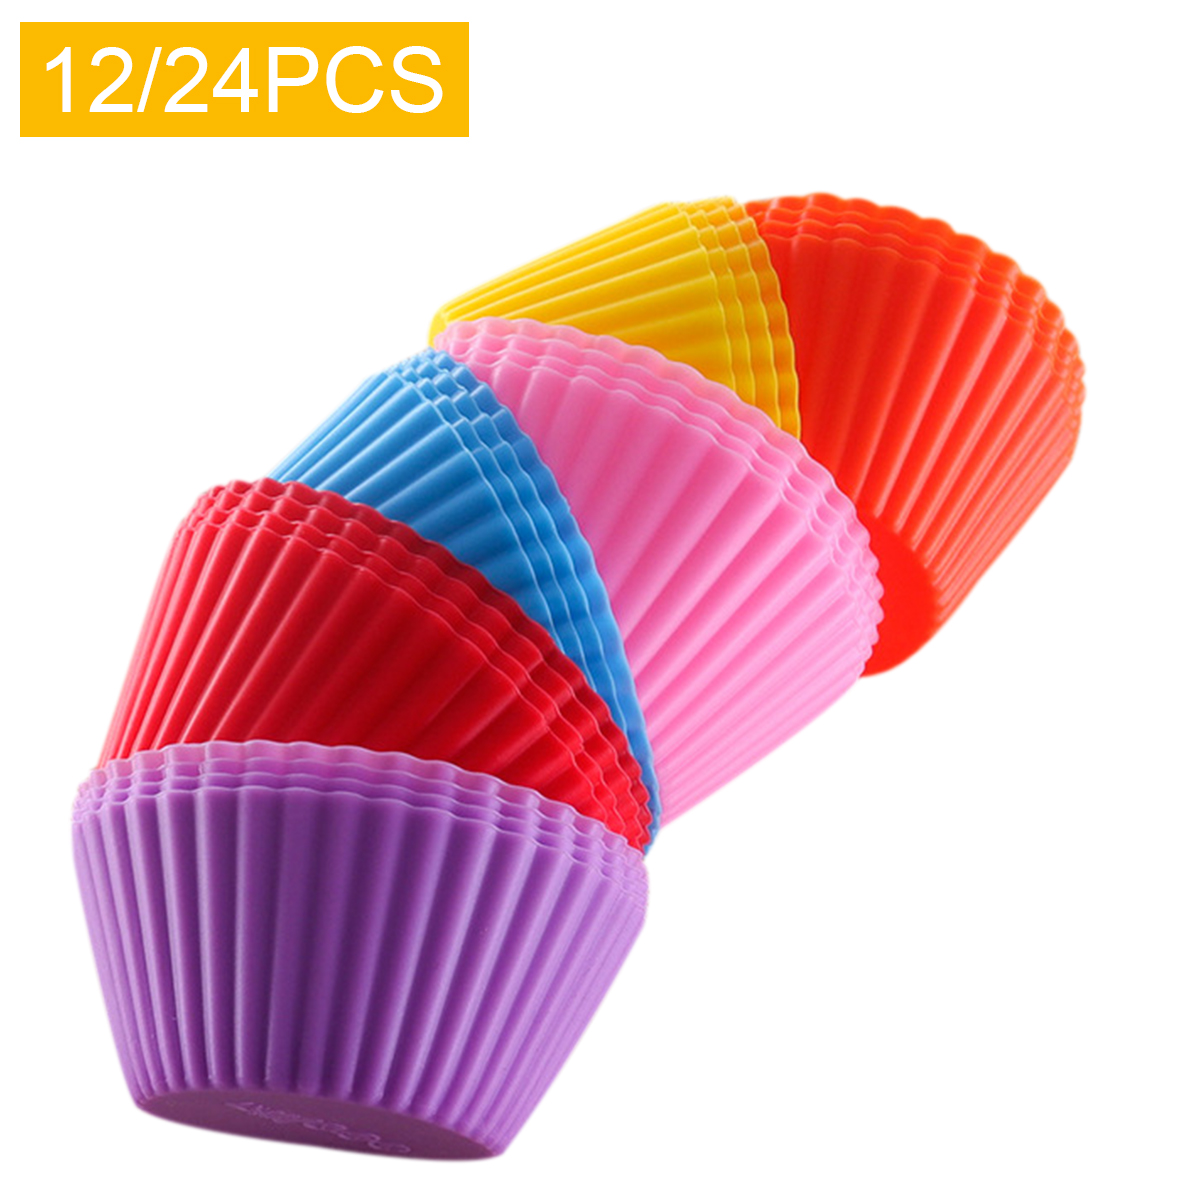 HK 12//24Pc Silicone Cake Muffin Chocolate Cupcake Liner Baking Cup Cookie Mold